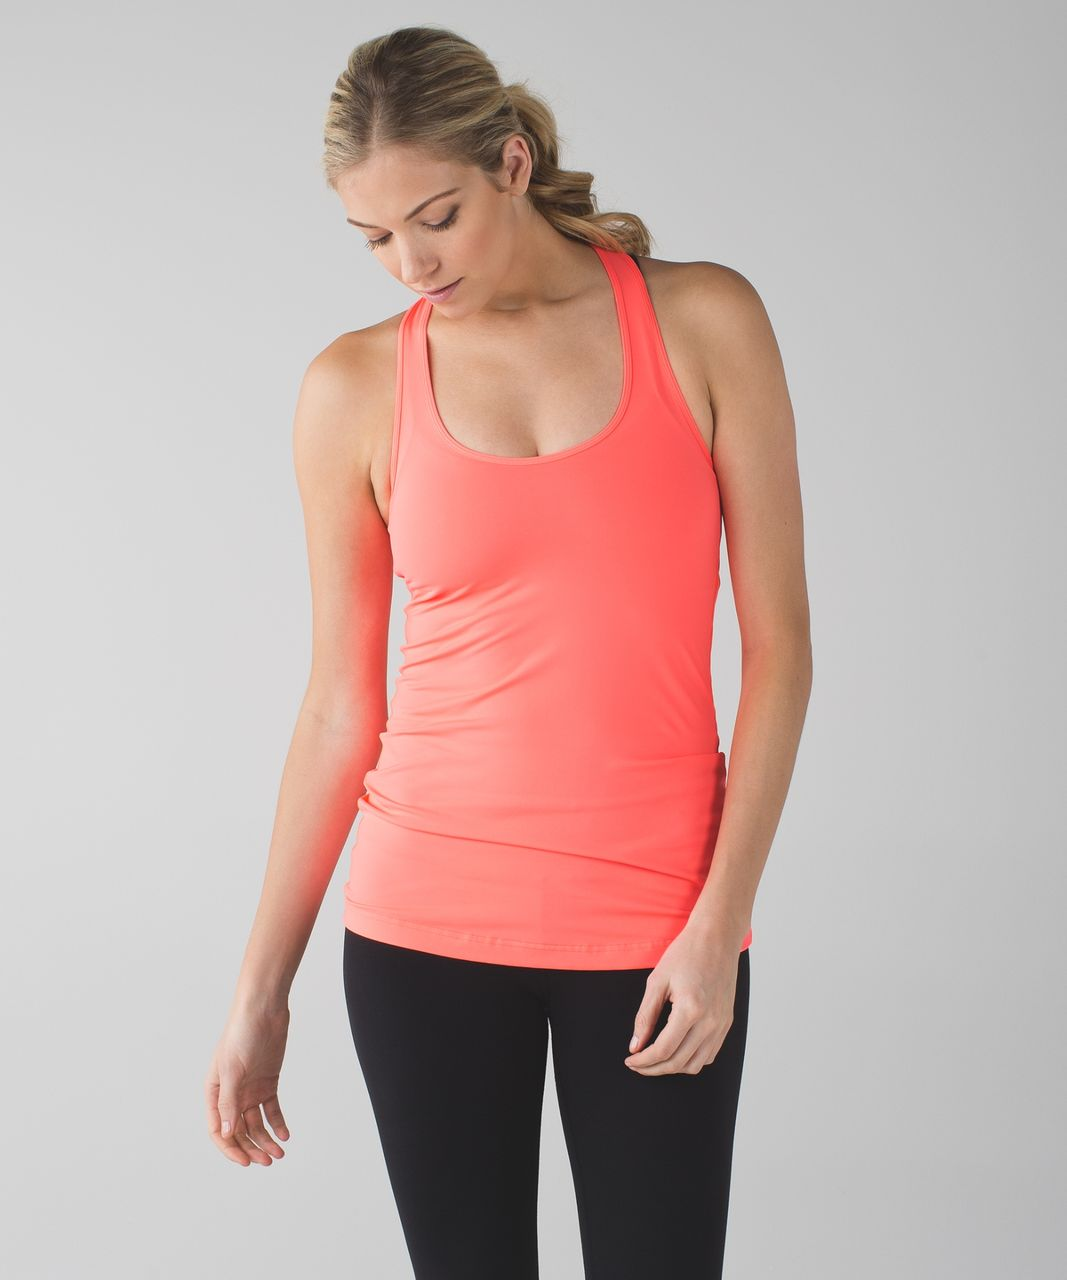 Lululemon Cool Racerback - Grapefruit (First Release)